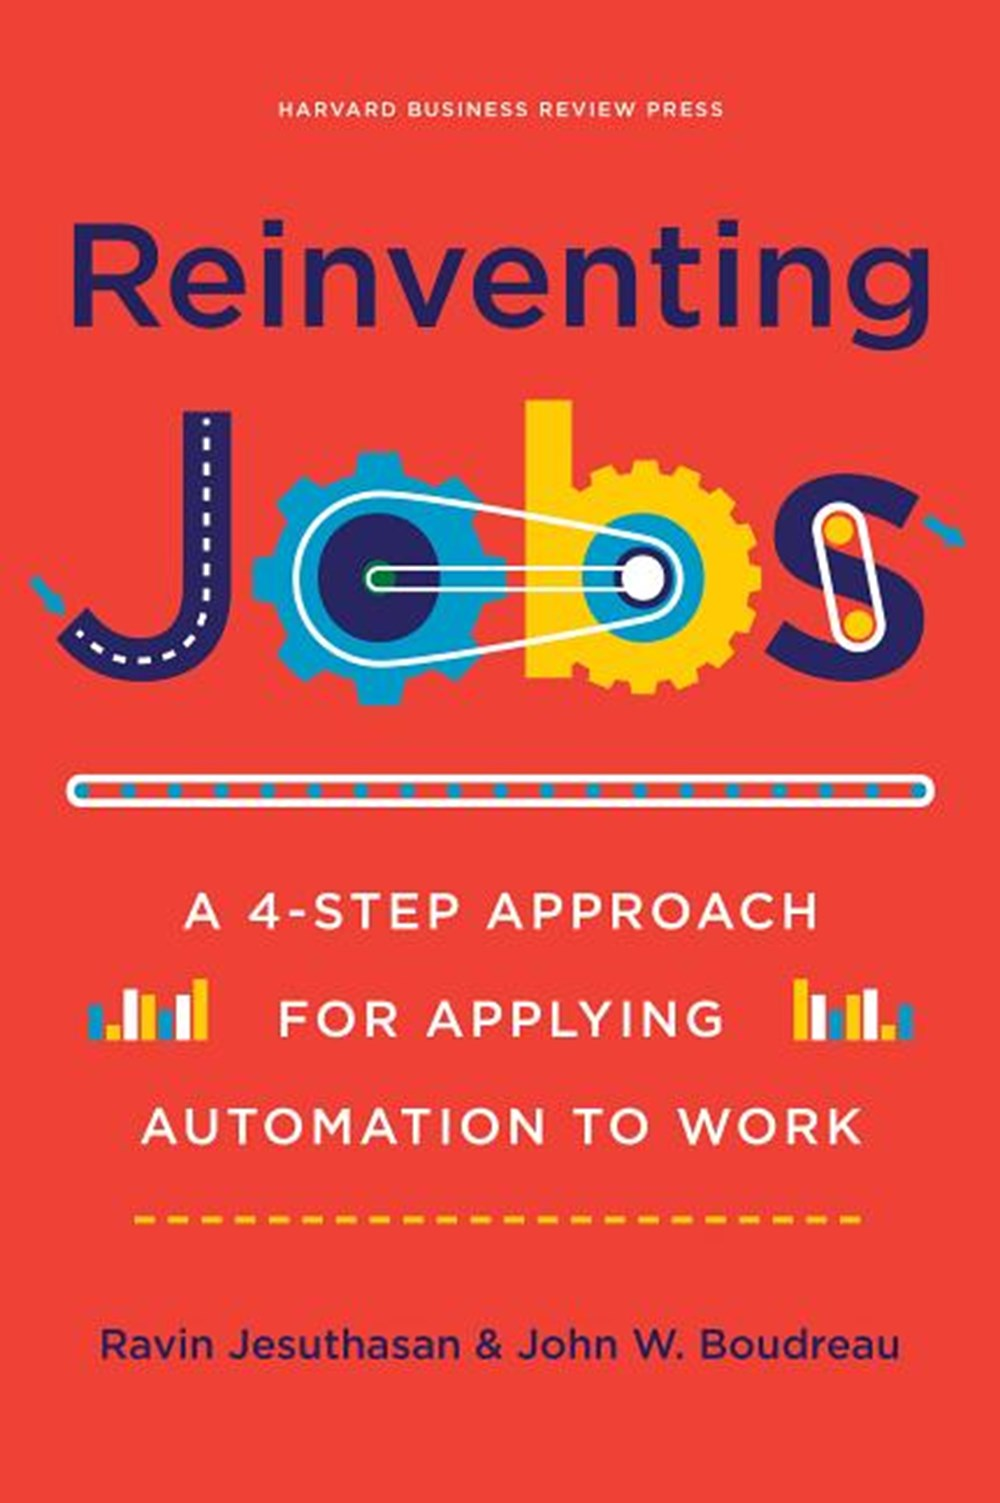 Reinventing Jobs A 4-Step Approach for Applying Automation to Work